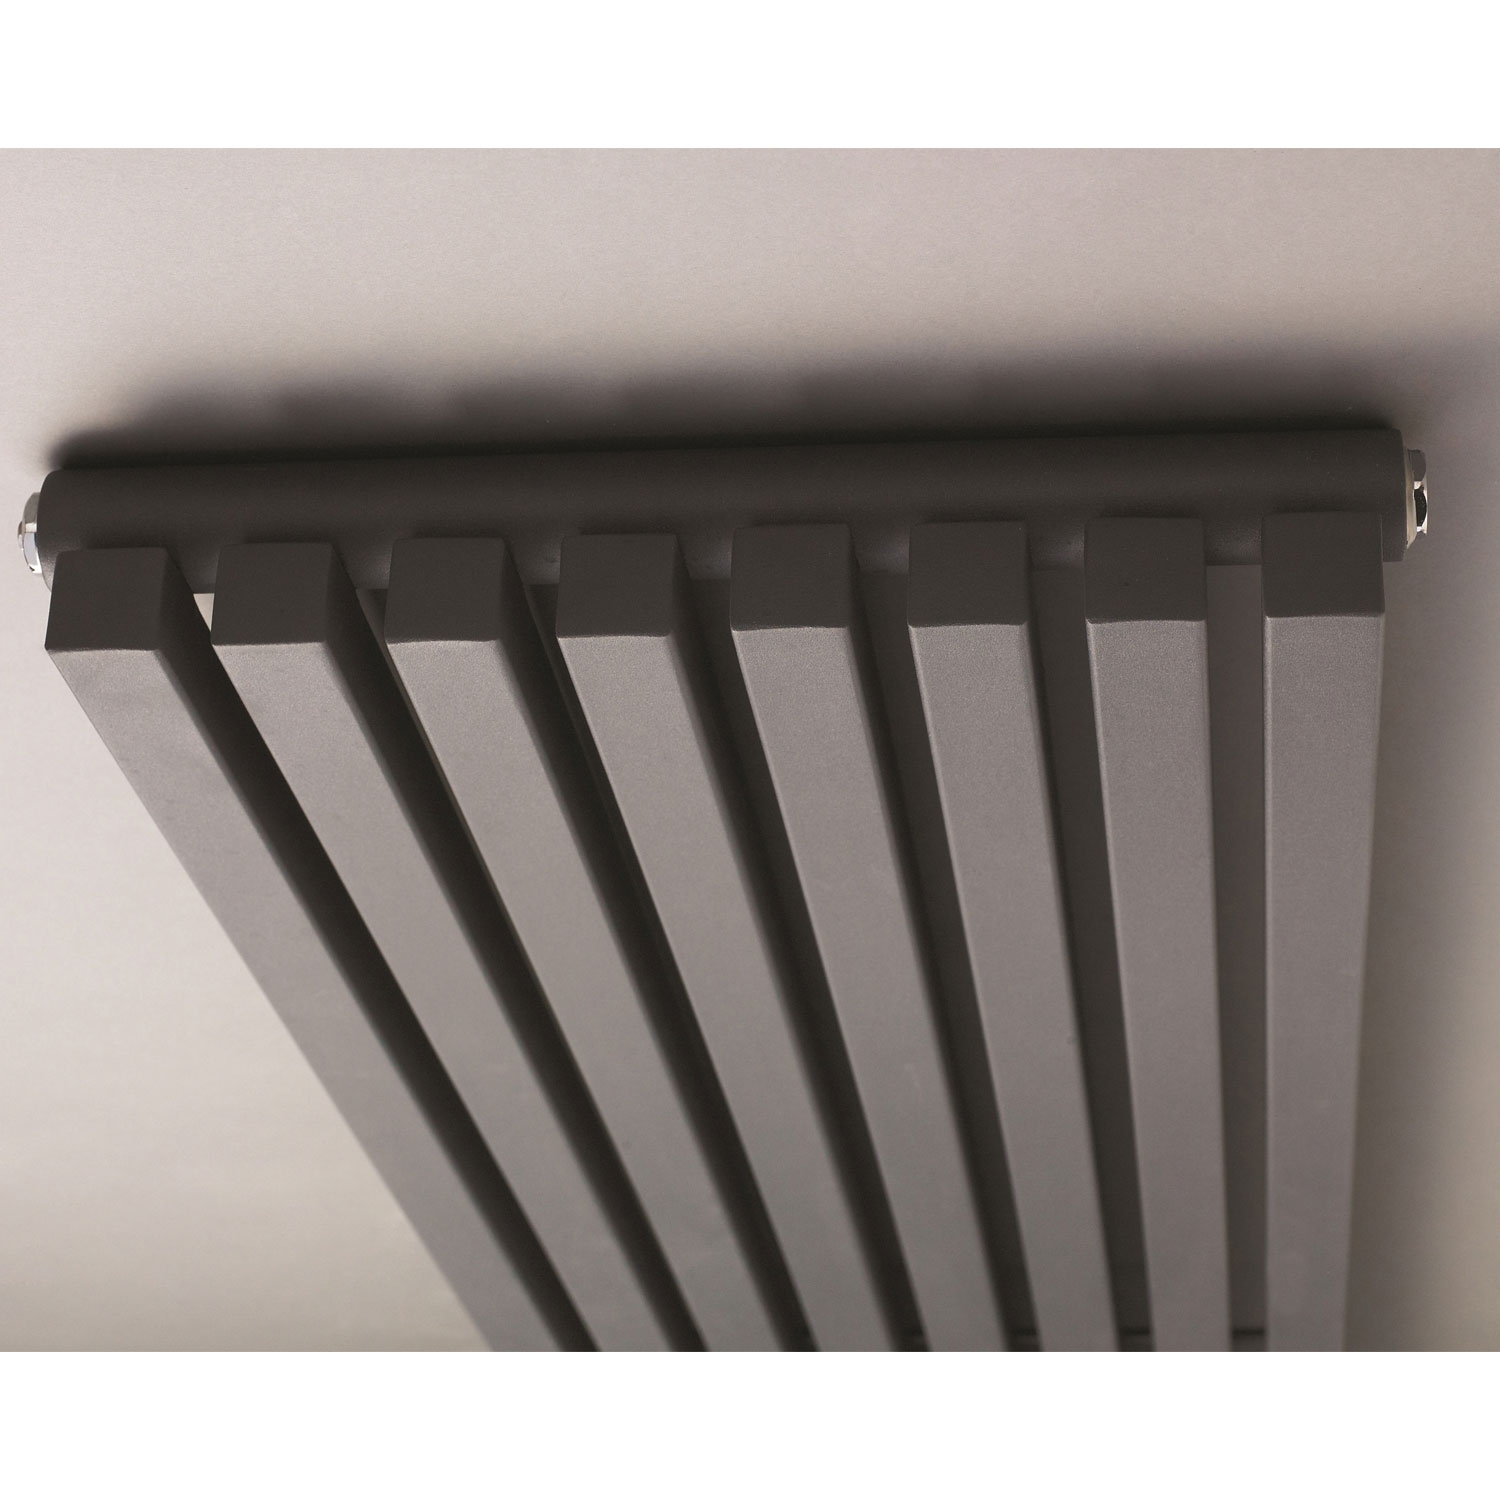 Hudson Reed Kinetic Designer Vertical Radiator 1800mm H x 360mm W Gloss Black